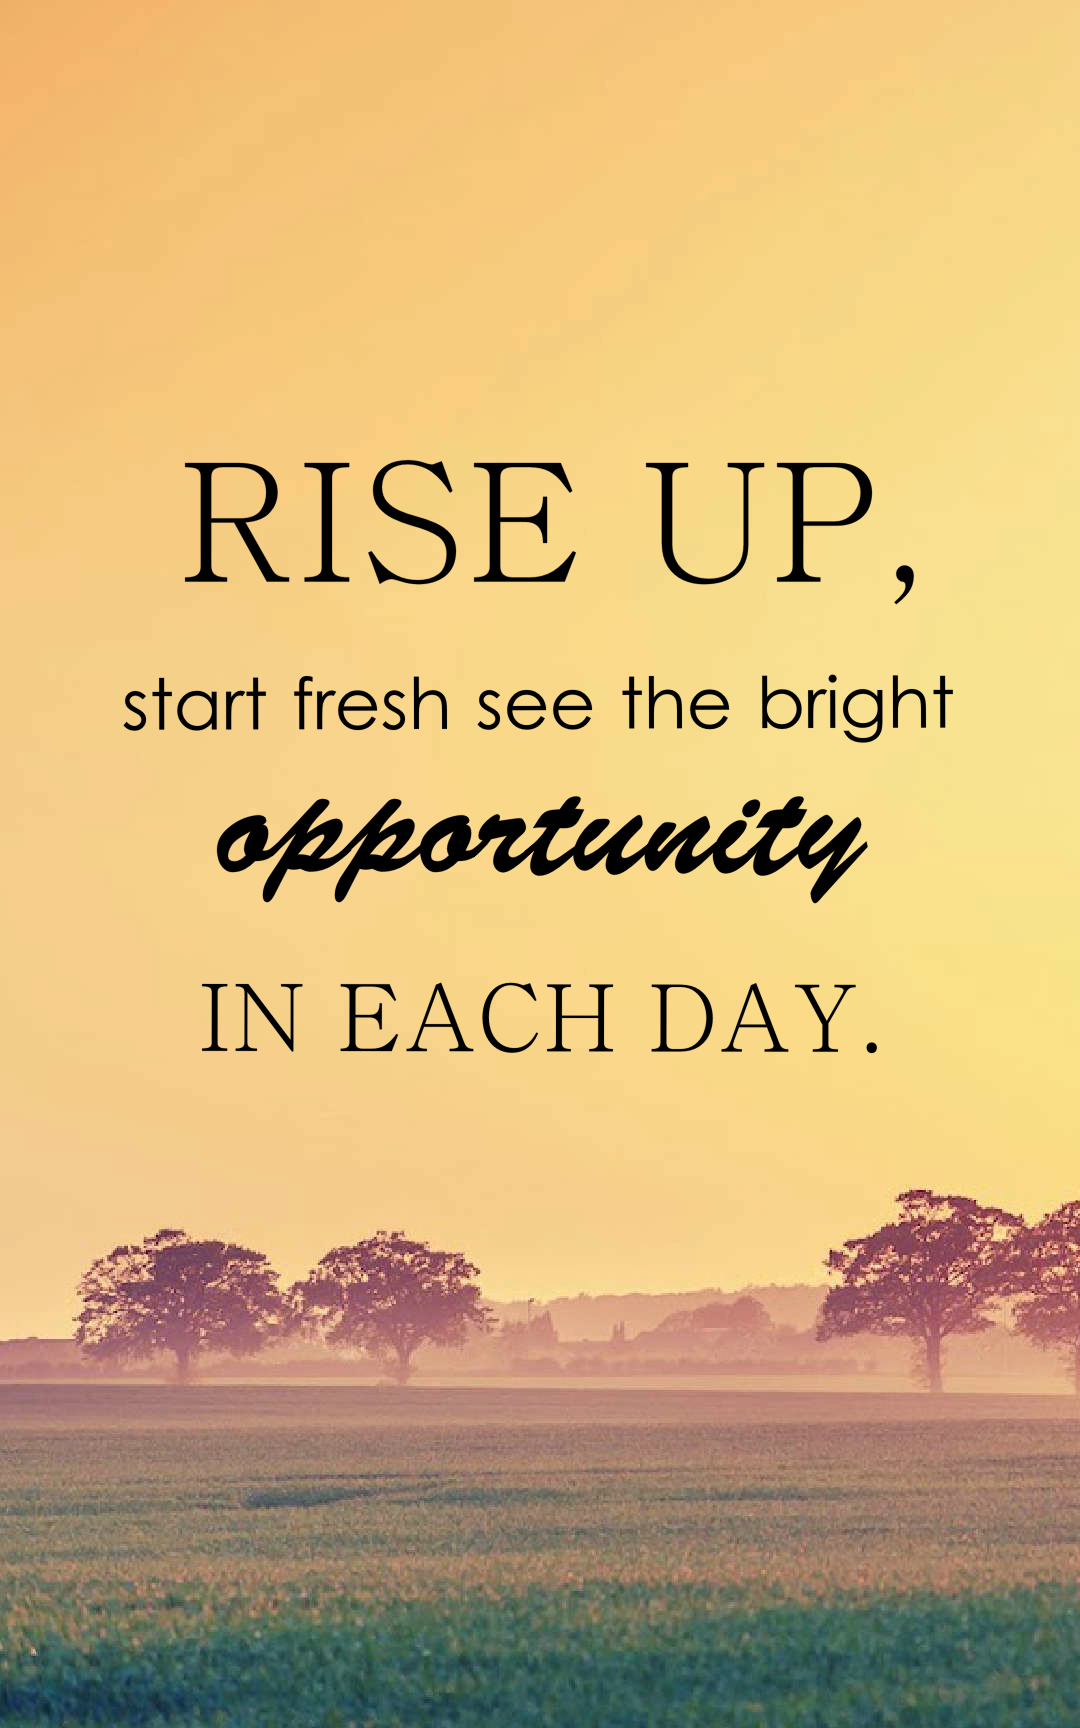 Positive Thinking Quotes Of The Day: Top 50 Opportunity Quotes And Sayings